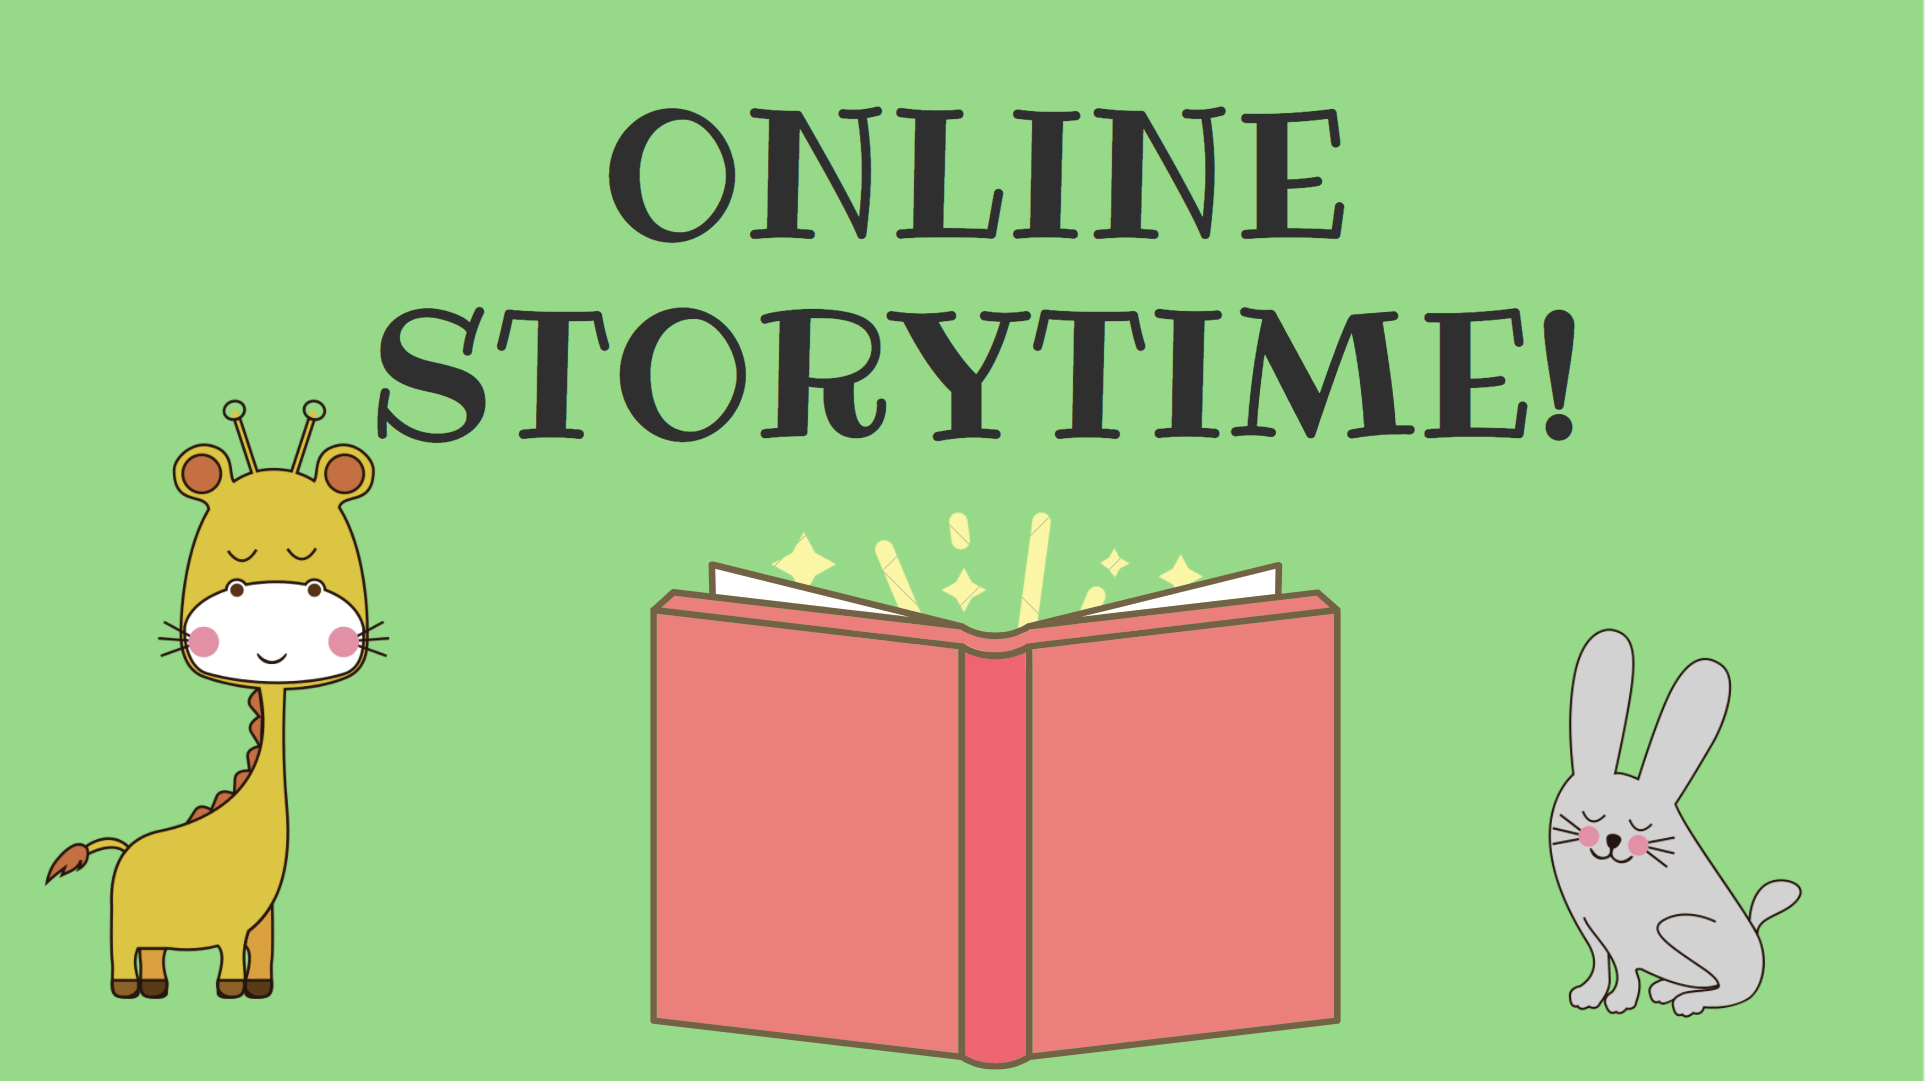 Online Story Time @ Online!